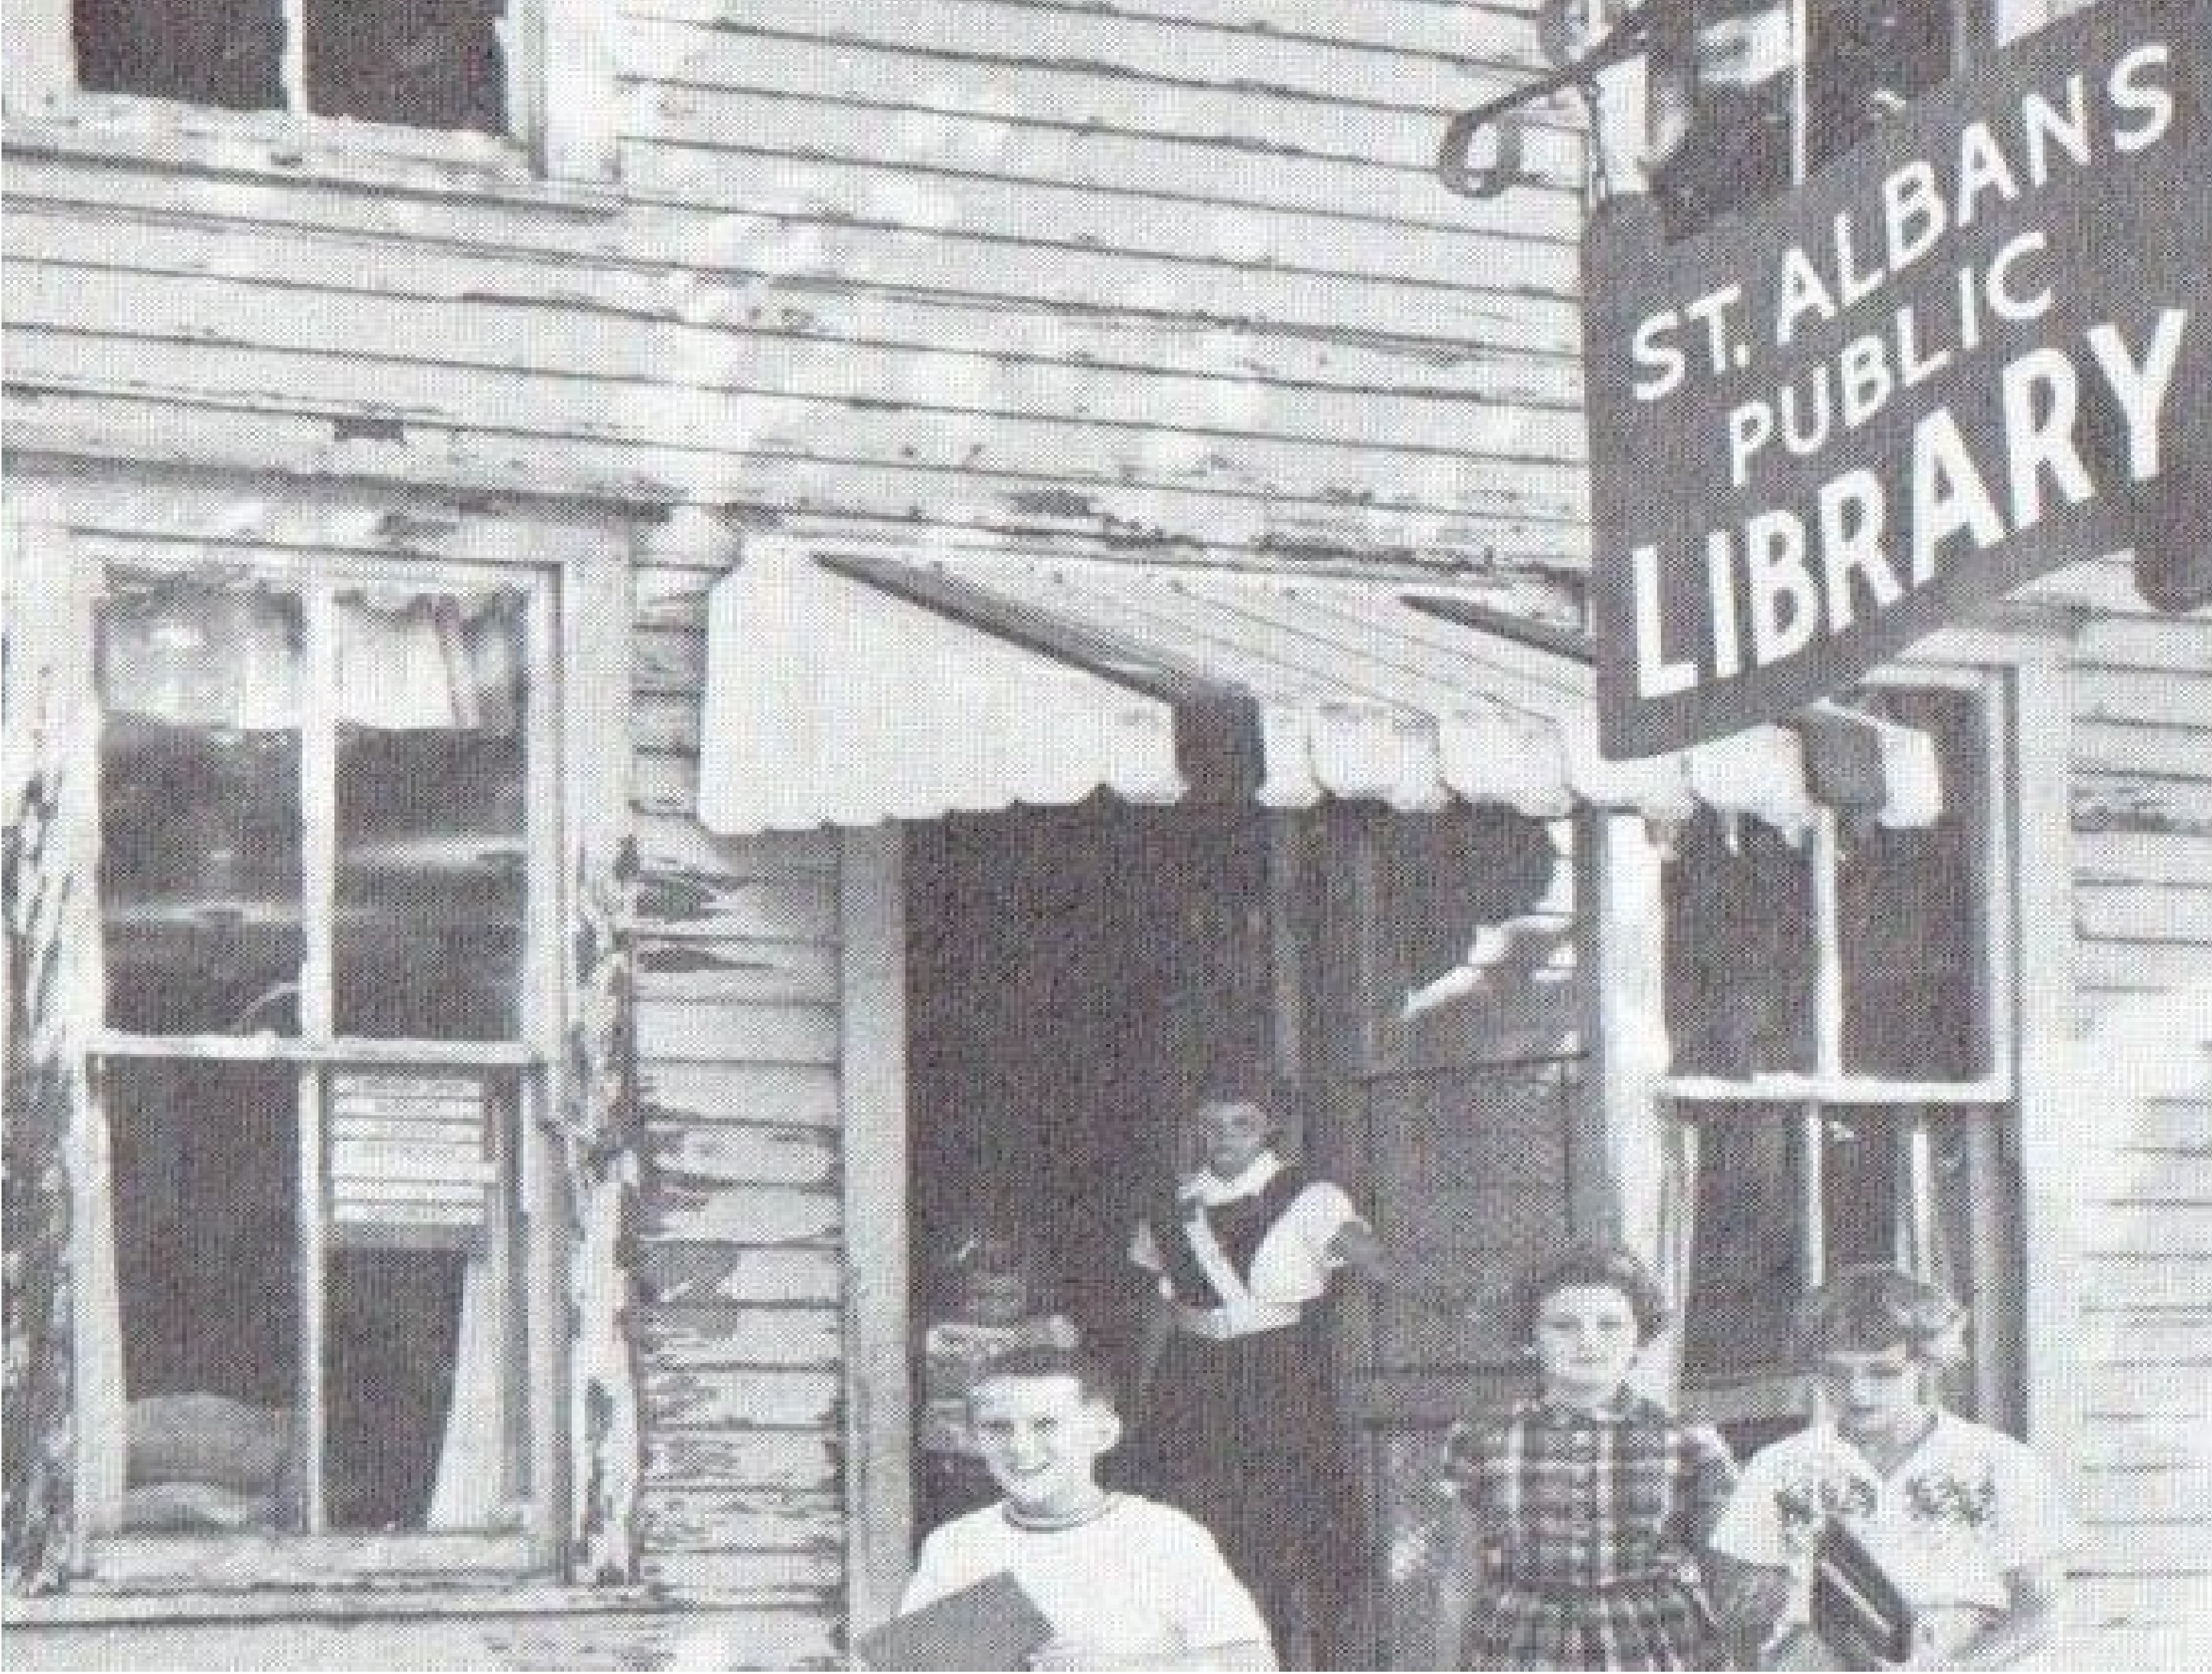 Old library, former candy store, in 1960.